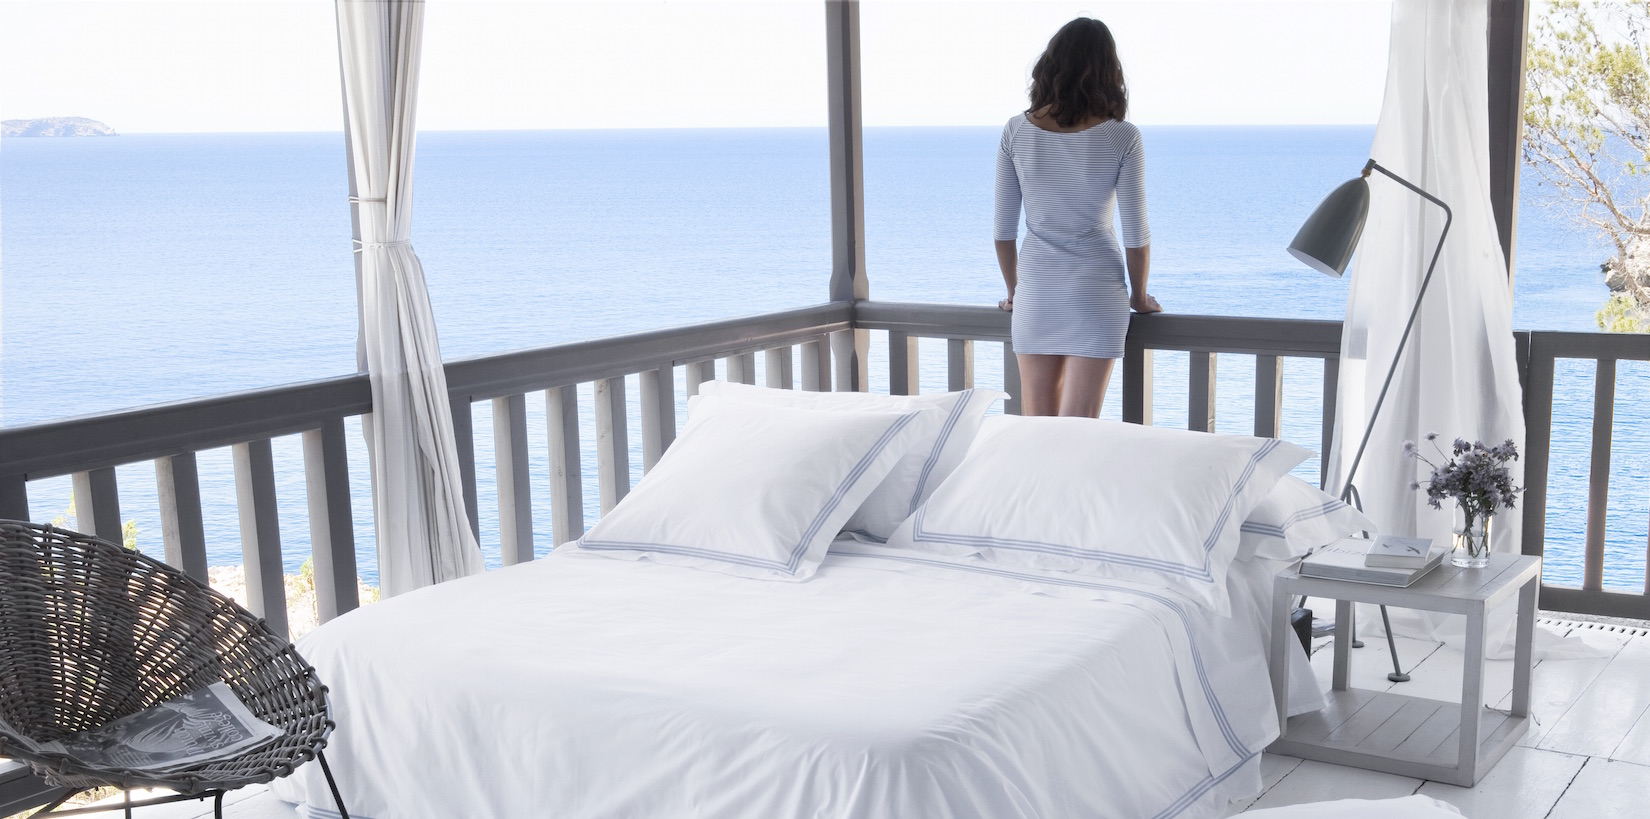 The bed in which you sleep